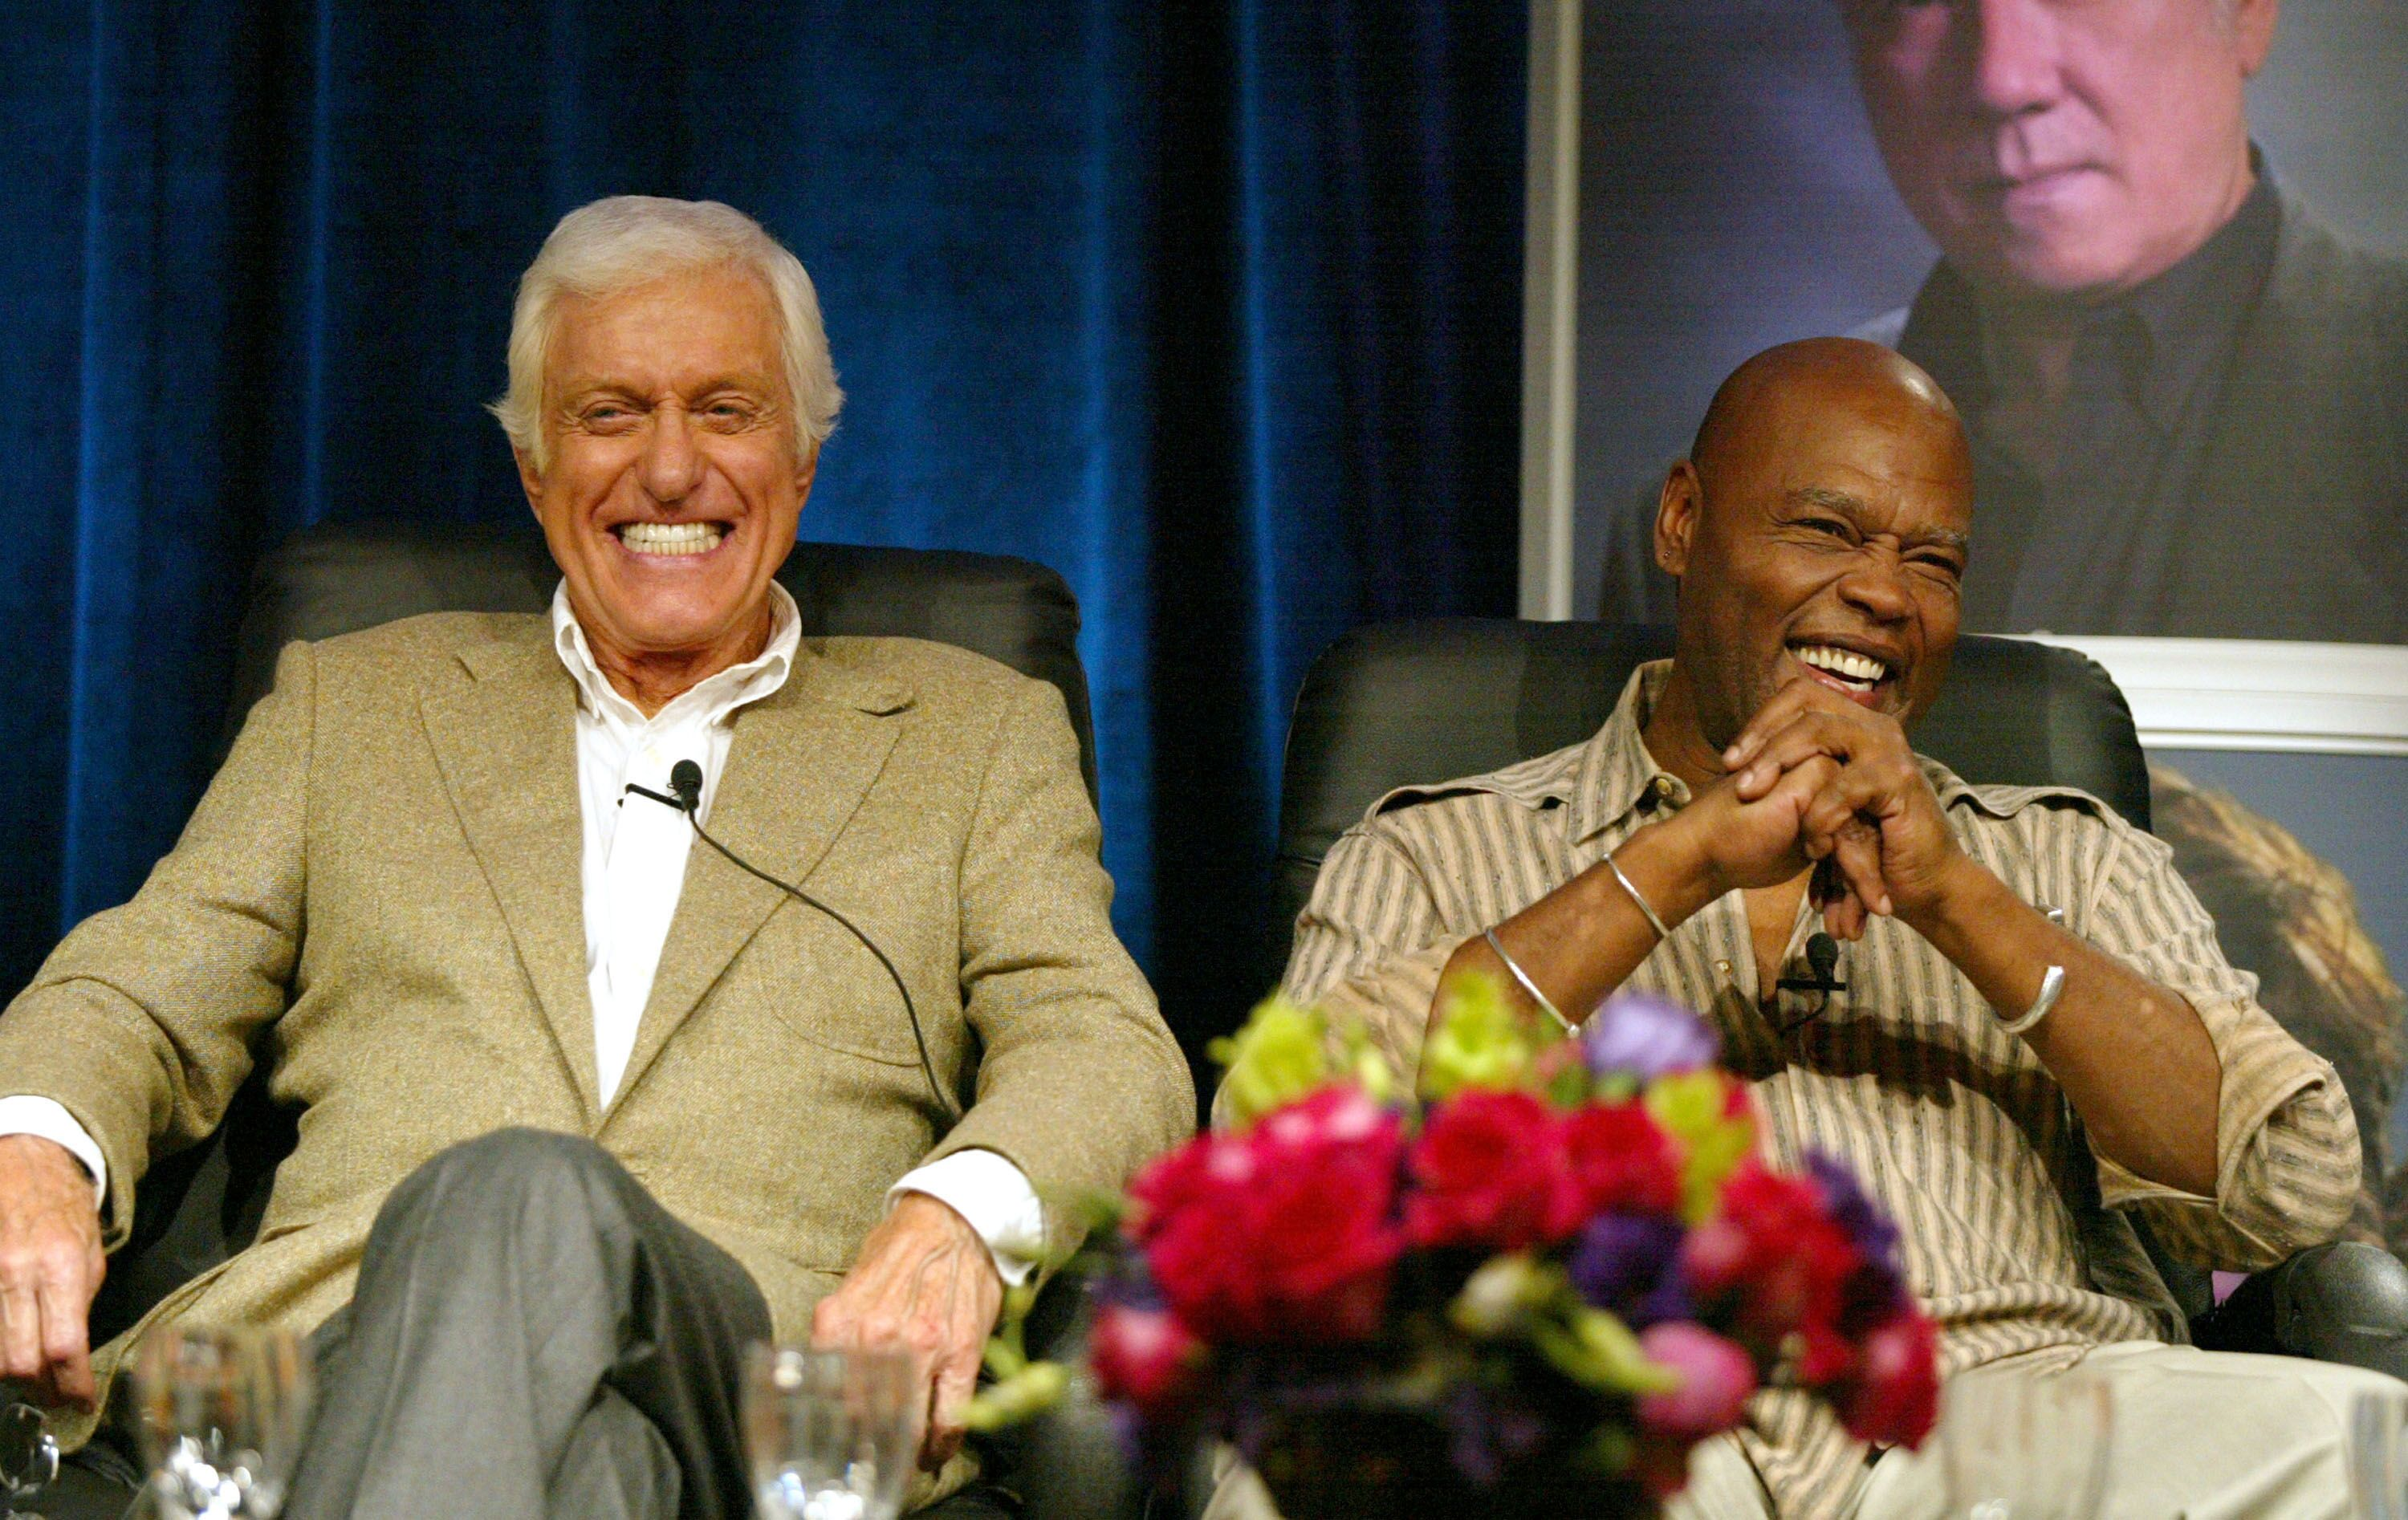 Dick Van Dyke and George Stanford Brown attend the Hallmark Channel presentation. | Source: Getty Images